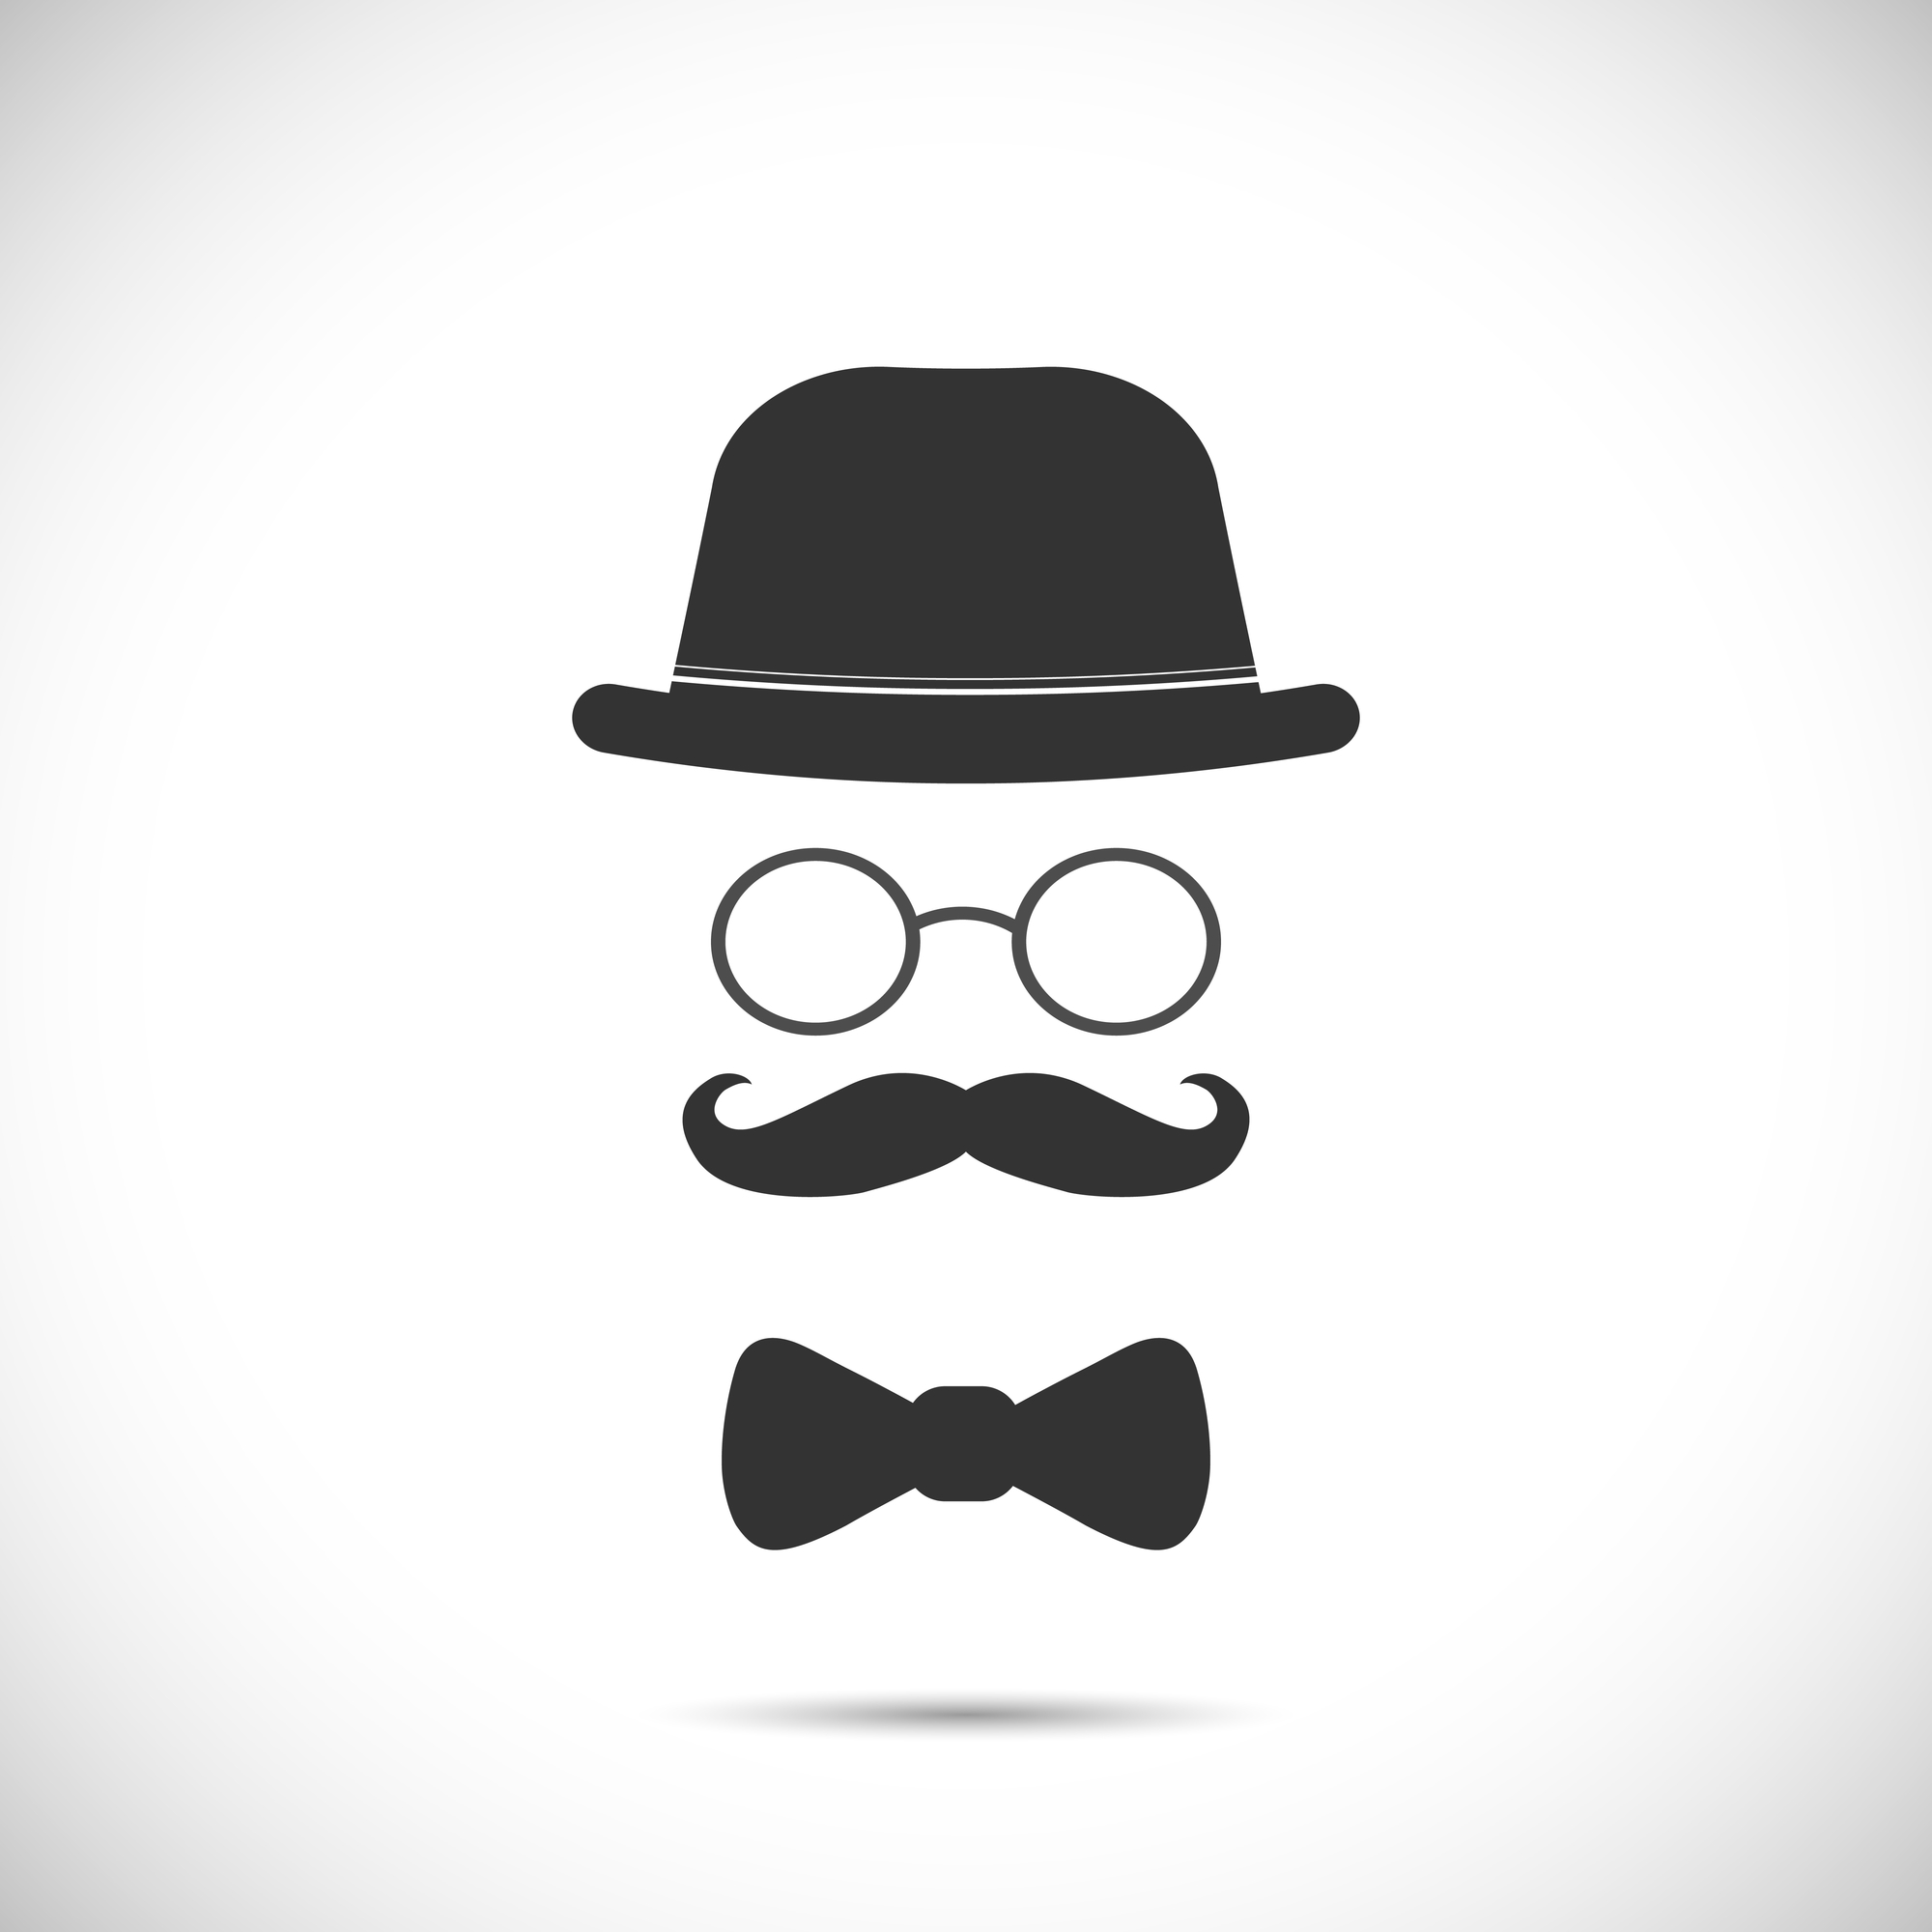 Illustration of a hat, glasses, mustache and bow tie design isolated on a white background.